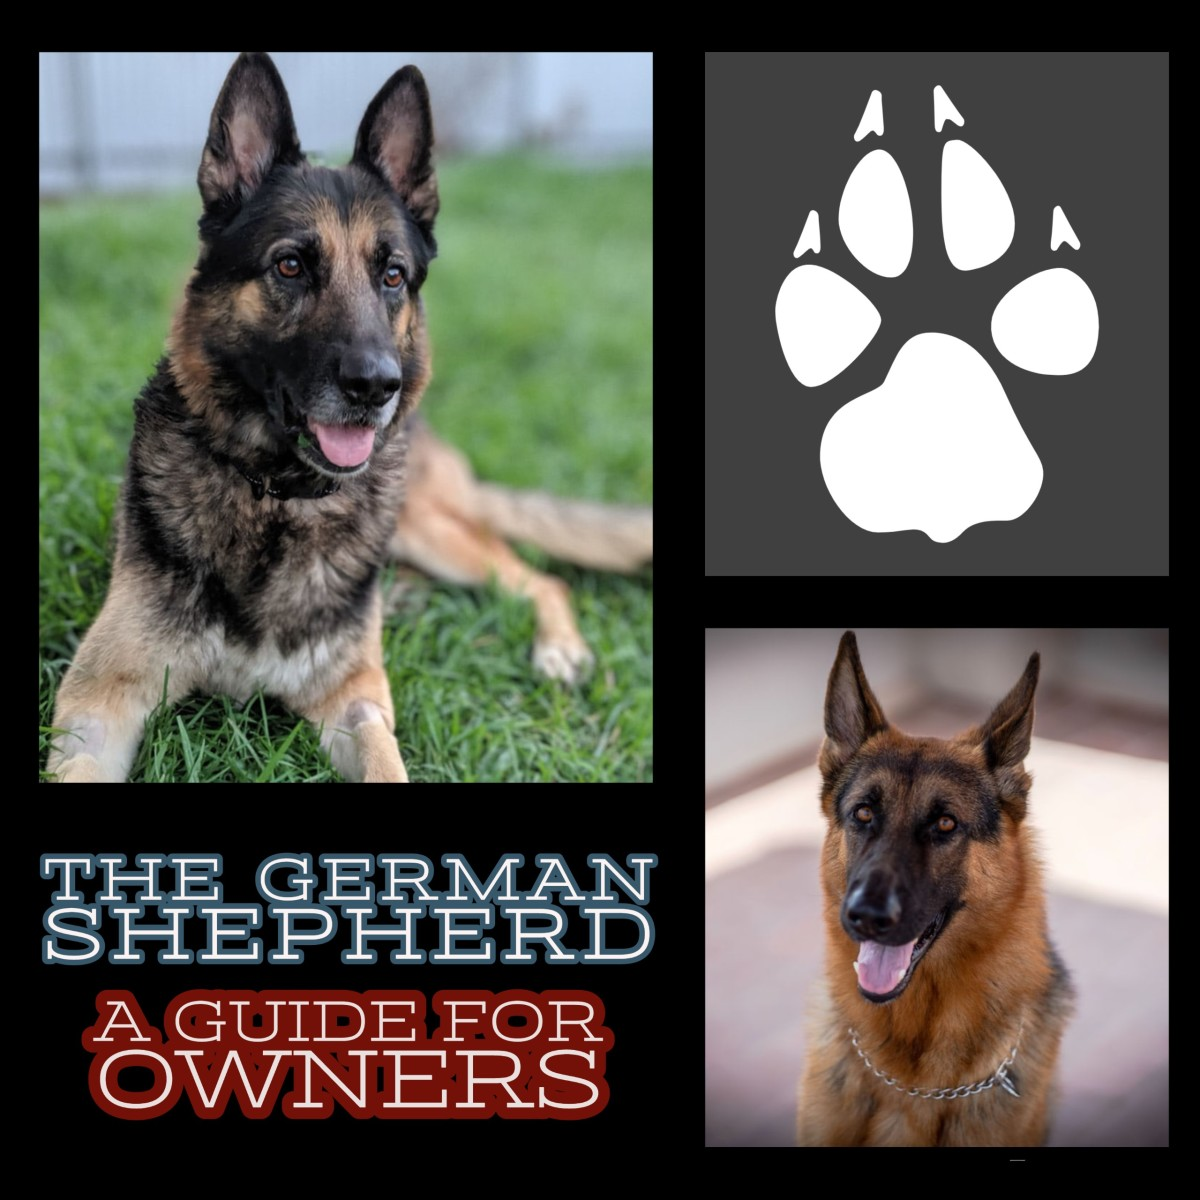 The German Shepherd: A Guide for Owners